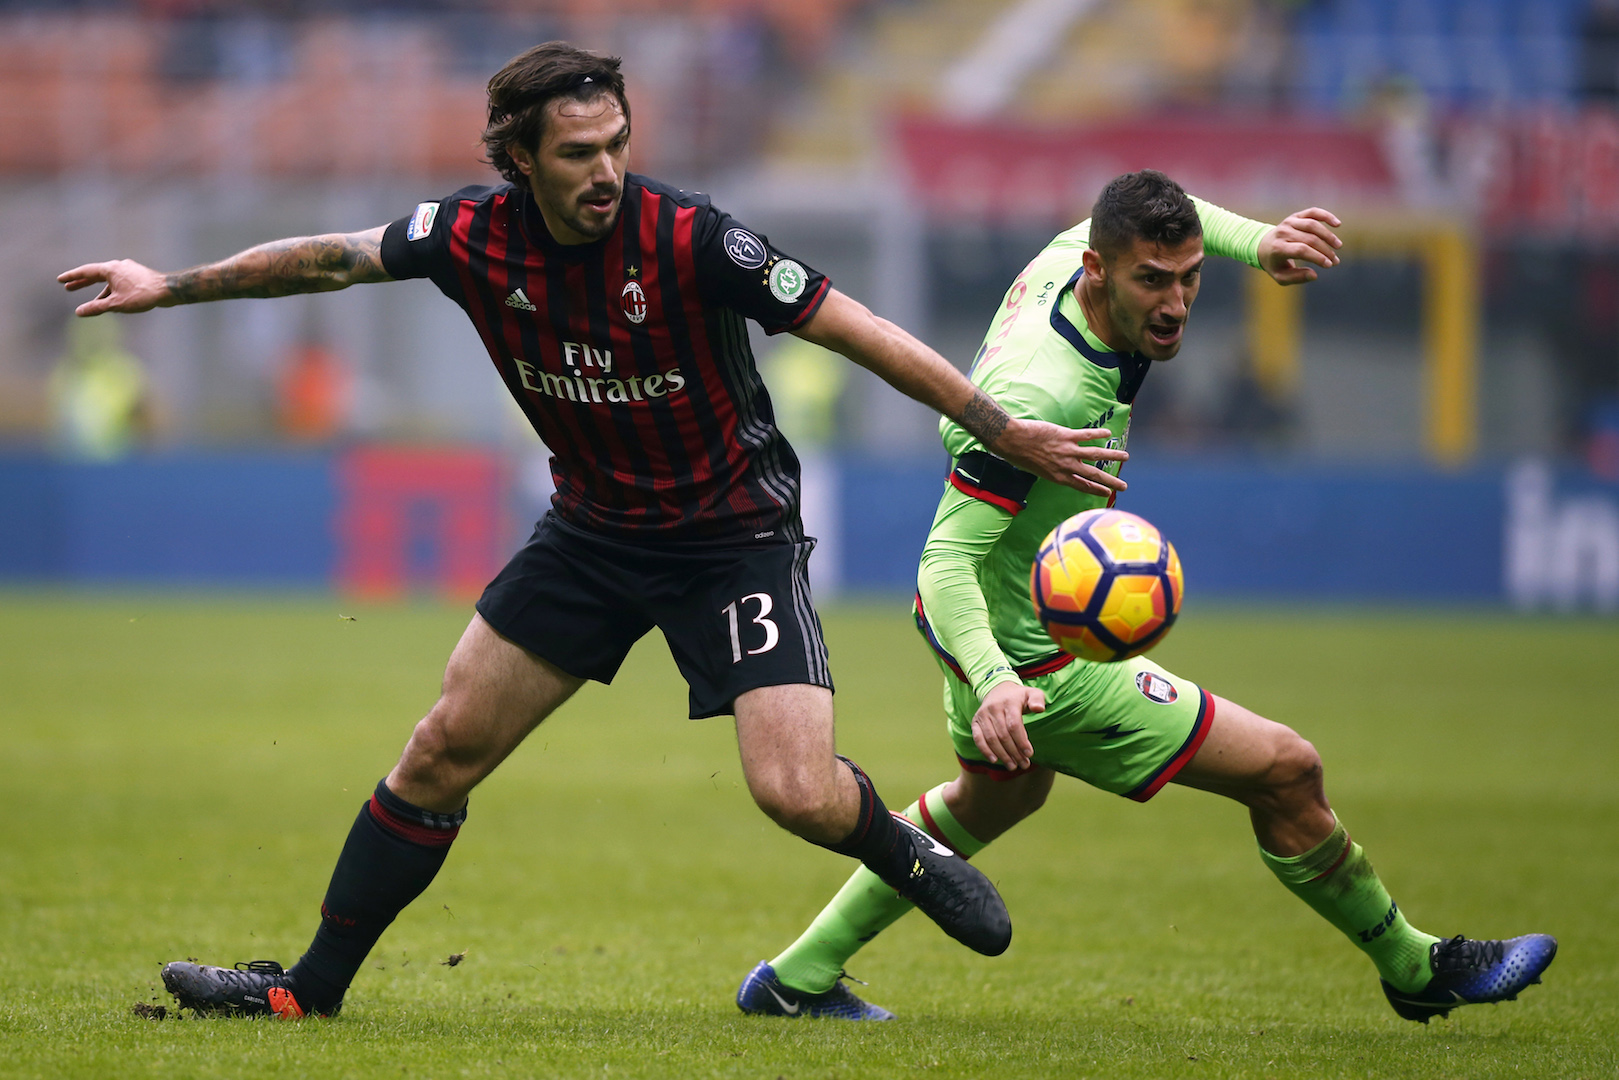 AC Milan's defender Alessio Romagnoli (L) fights for the ball with Crotone's forward Diego Falcinelli during the Italian Serie A football match AC Milan Vs Crotone on December 4, 2016 at the 'San Siro Stadium' in Milan. / AFP / MARCO BERTORELLO (Photo credit should read MARCO BERTORELLO/AFP/Getty Images)